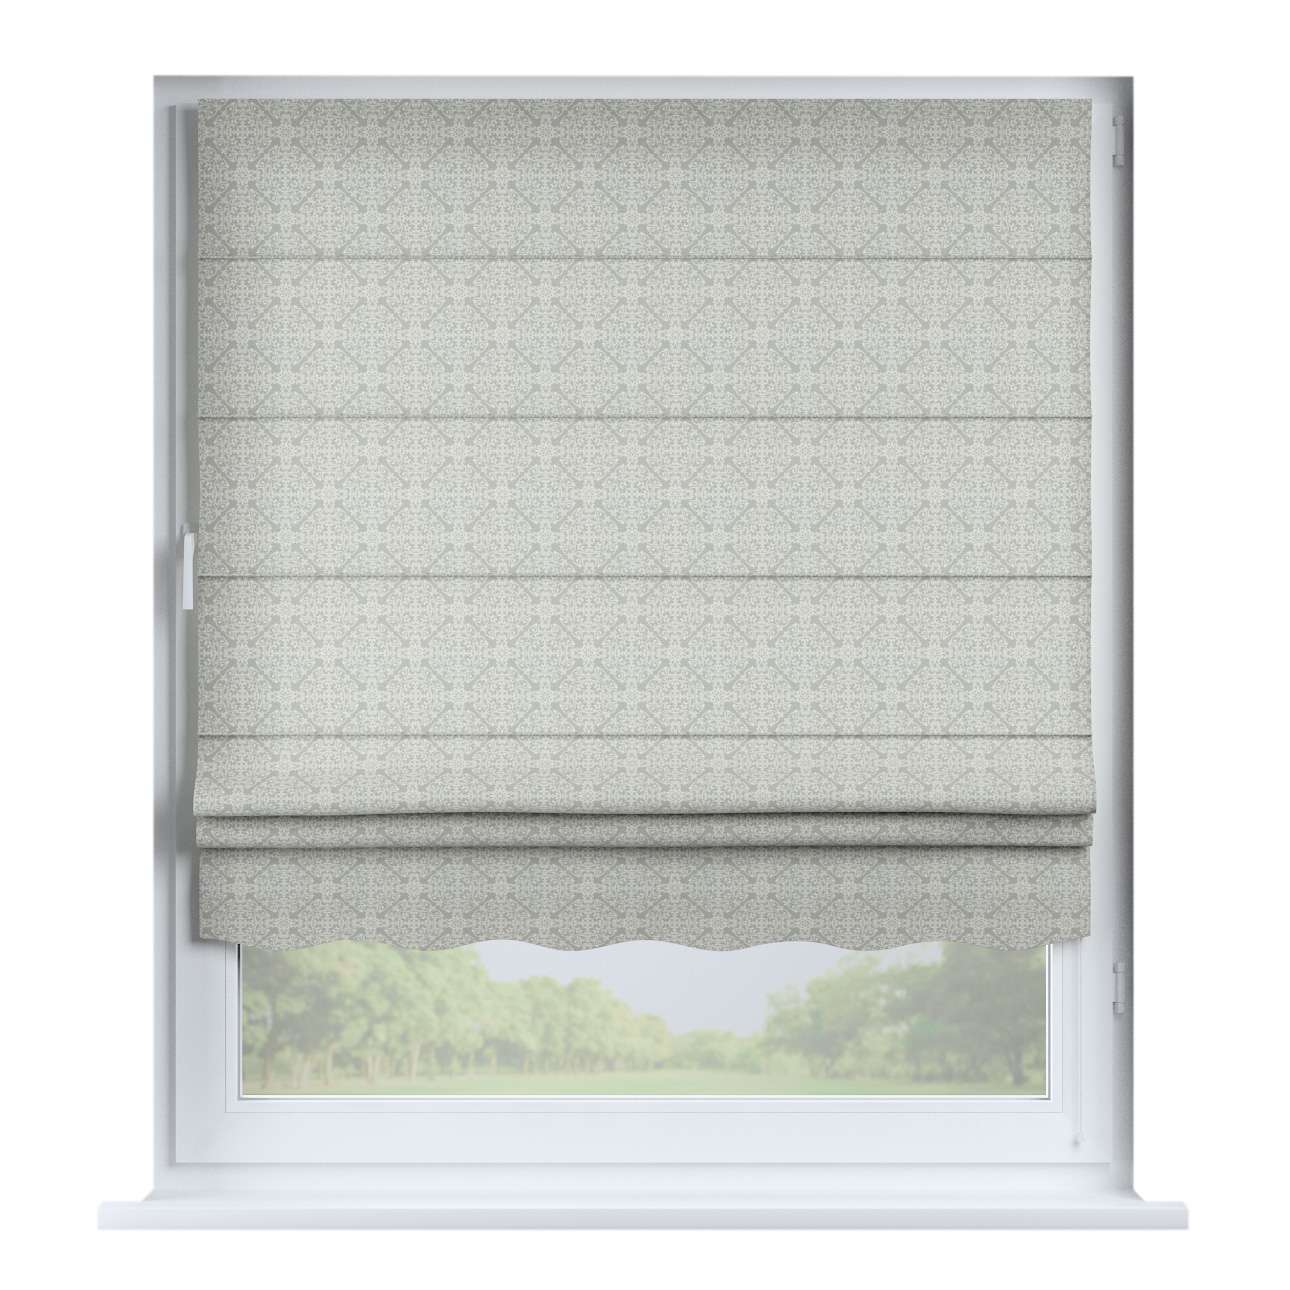 Florence roman blind  80 × 170 cm (31.5 × 67 inch) in collection Flowers, fabric: 140-38